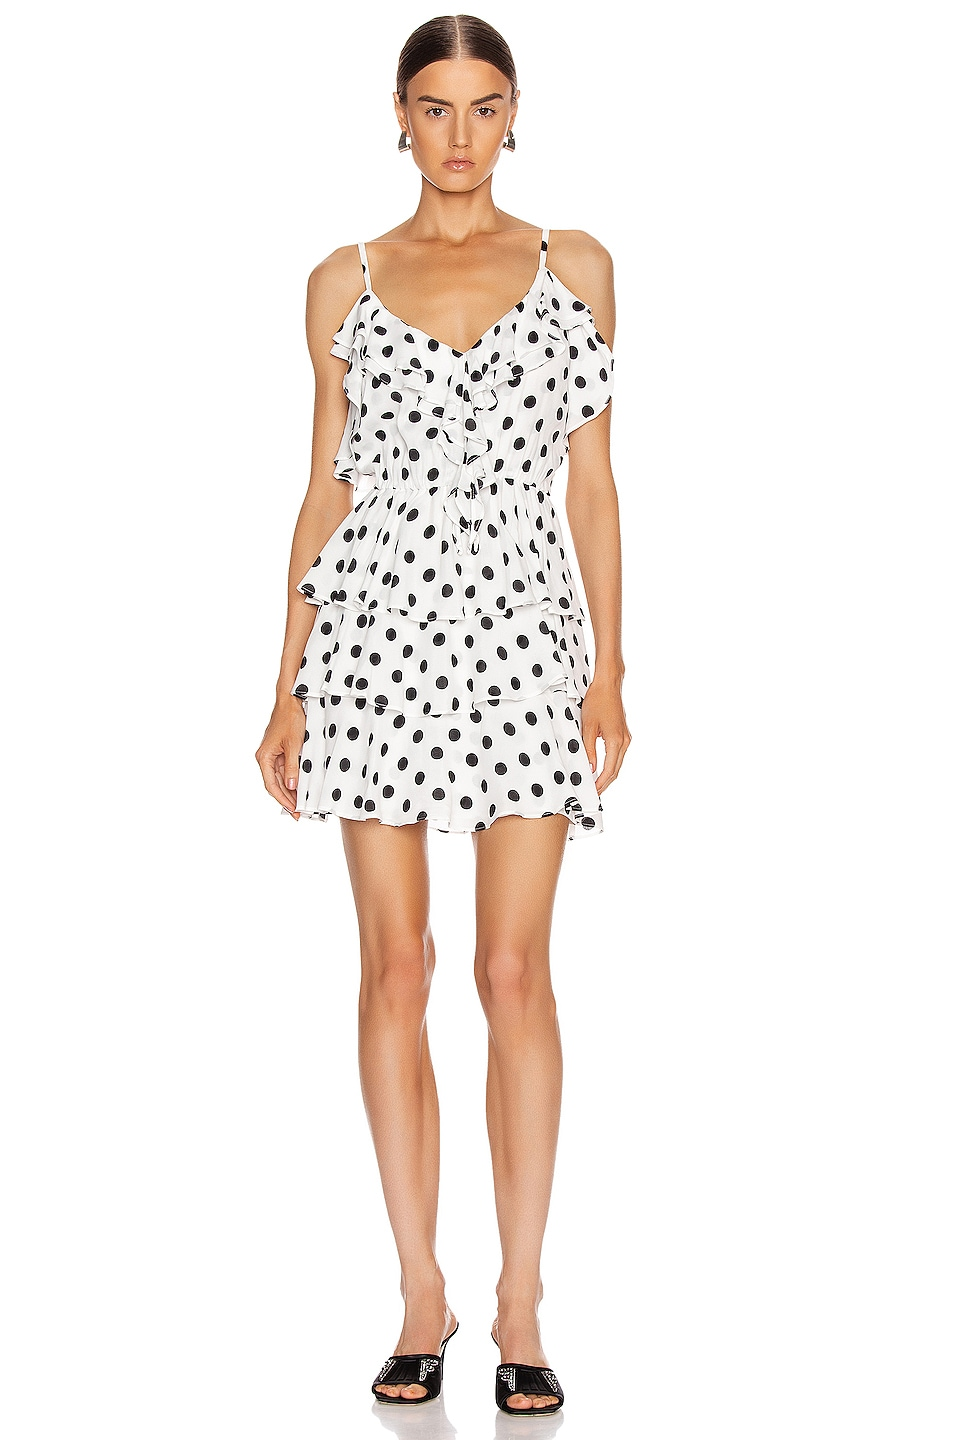 Image 1 of ICONS Objects of Devotion Ruffle Stacked Mini Dress in White & Black Polka Dot